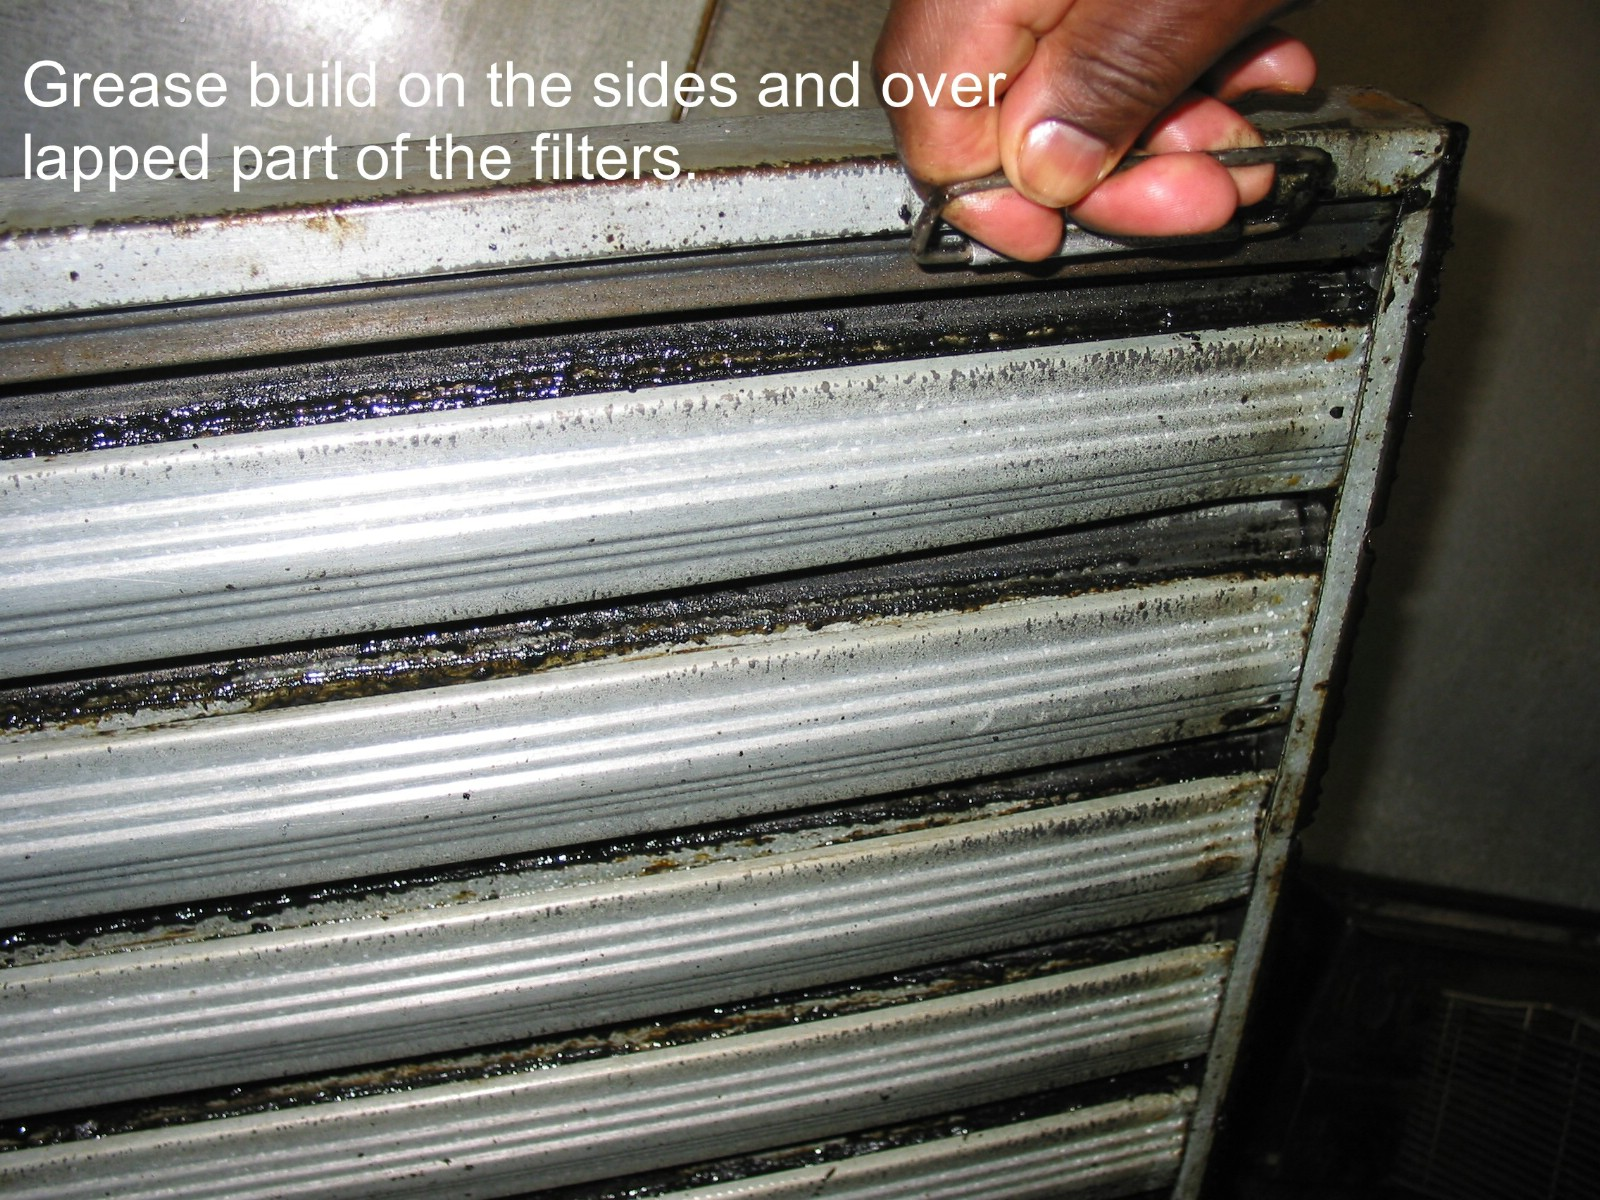 Why Is The Fan Ing My Grease Filters Up Into Hood Pro Inc What Optimum Air Velocity For Removing Laden From A Kitchen